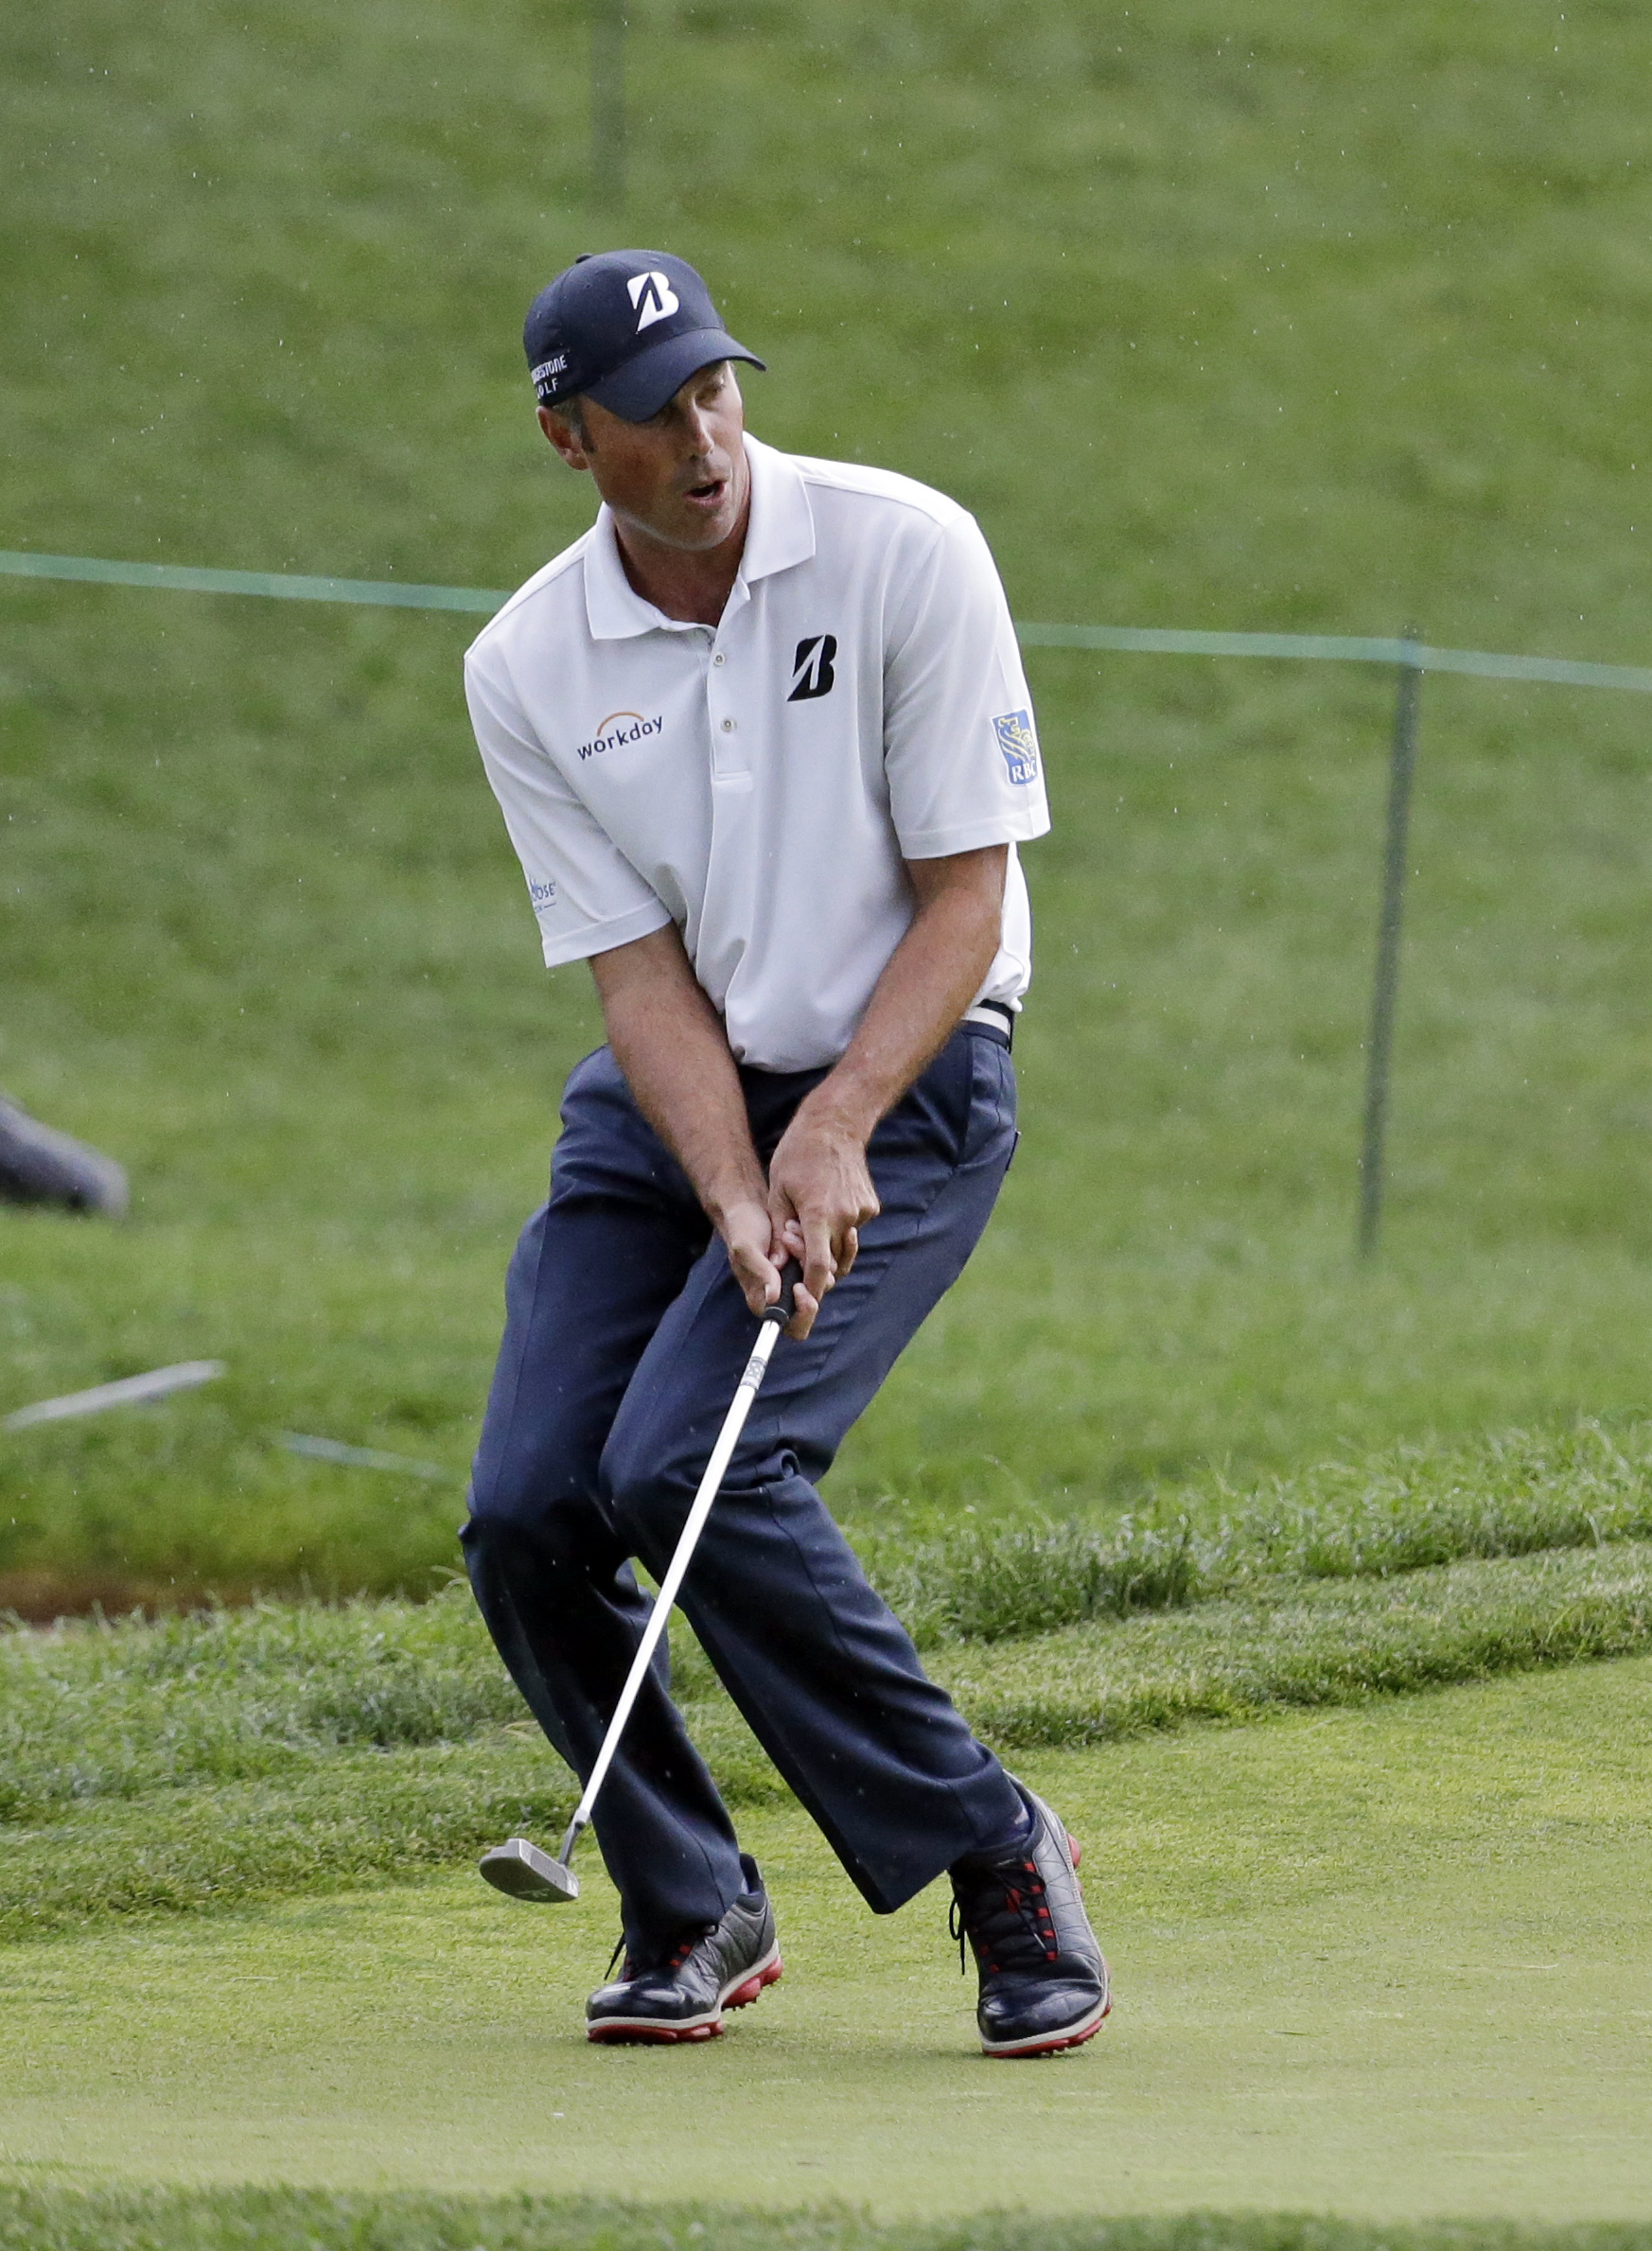 Matt Kuchar reacts to a missed putt on the 17th green during the third round of the Memorial golf tournament, Saturday, June 4, 2016, in Dublin, Ohio. (AP Photo/Darron Cummings)